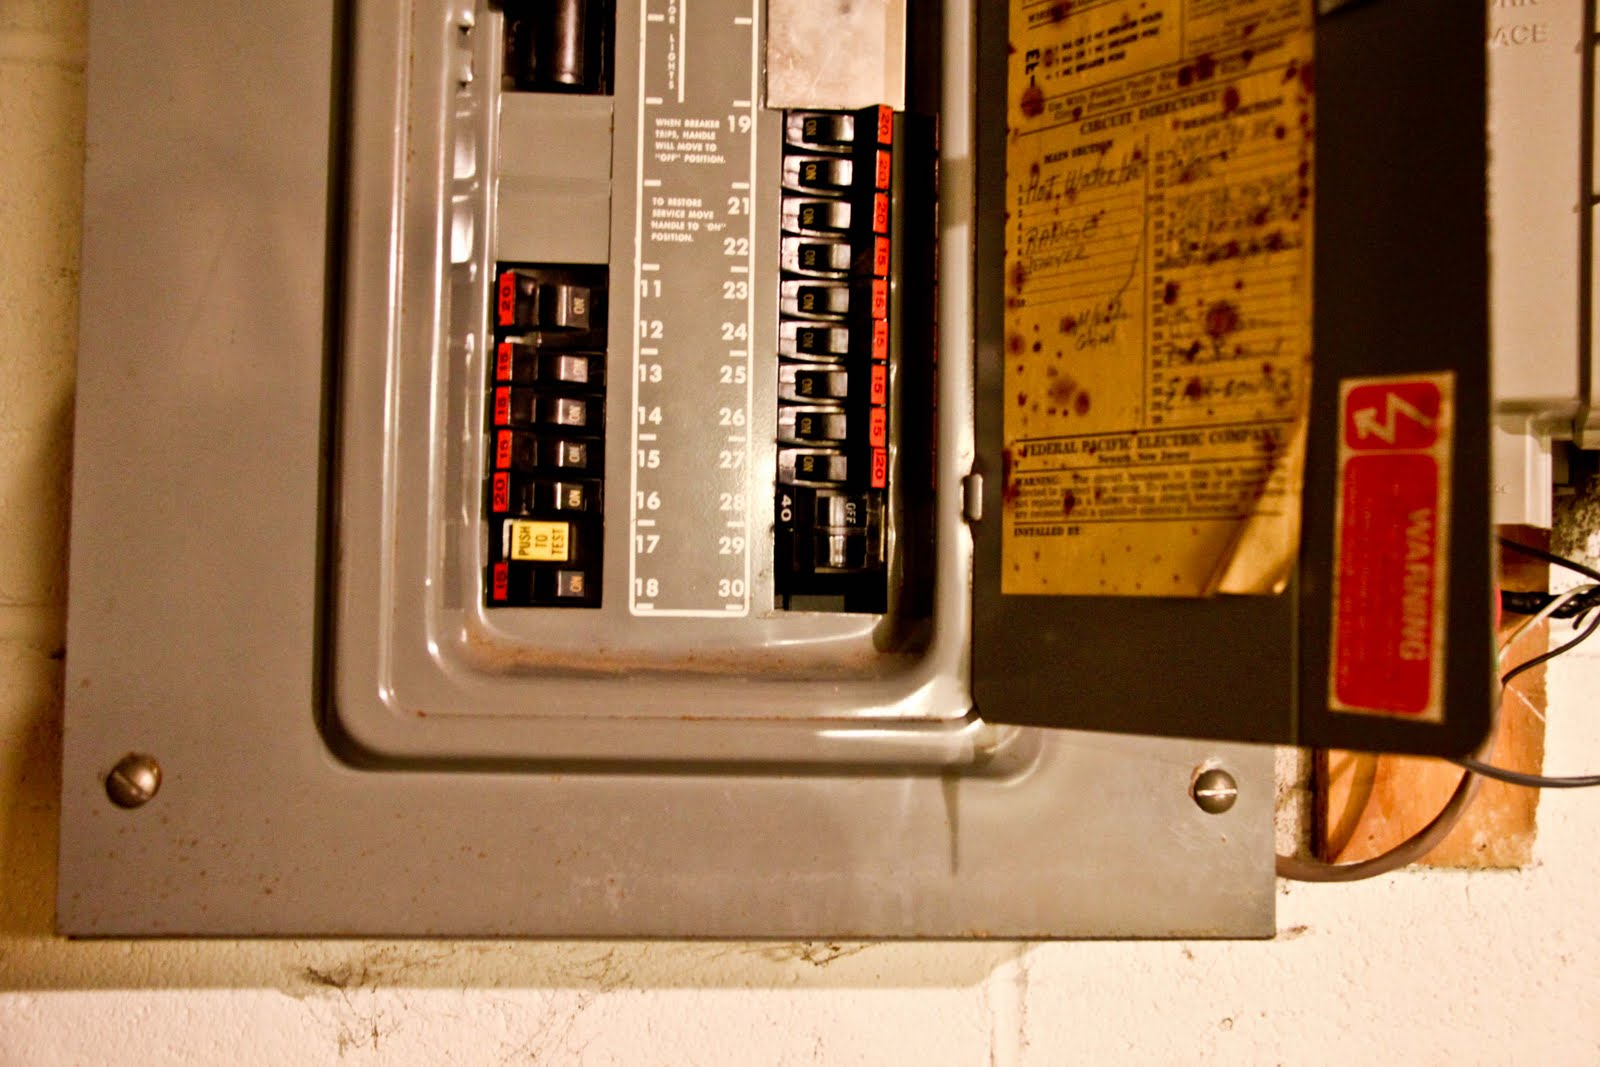 IMG_4614 replacing fuse on central ac unit work space how to change a fuse in a breaker box at bayanpartner.co